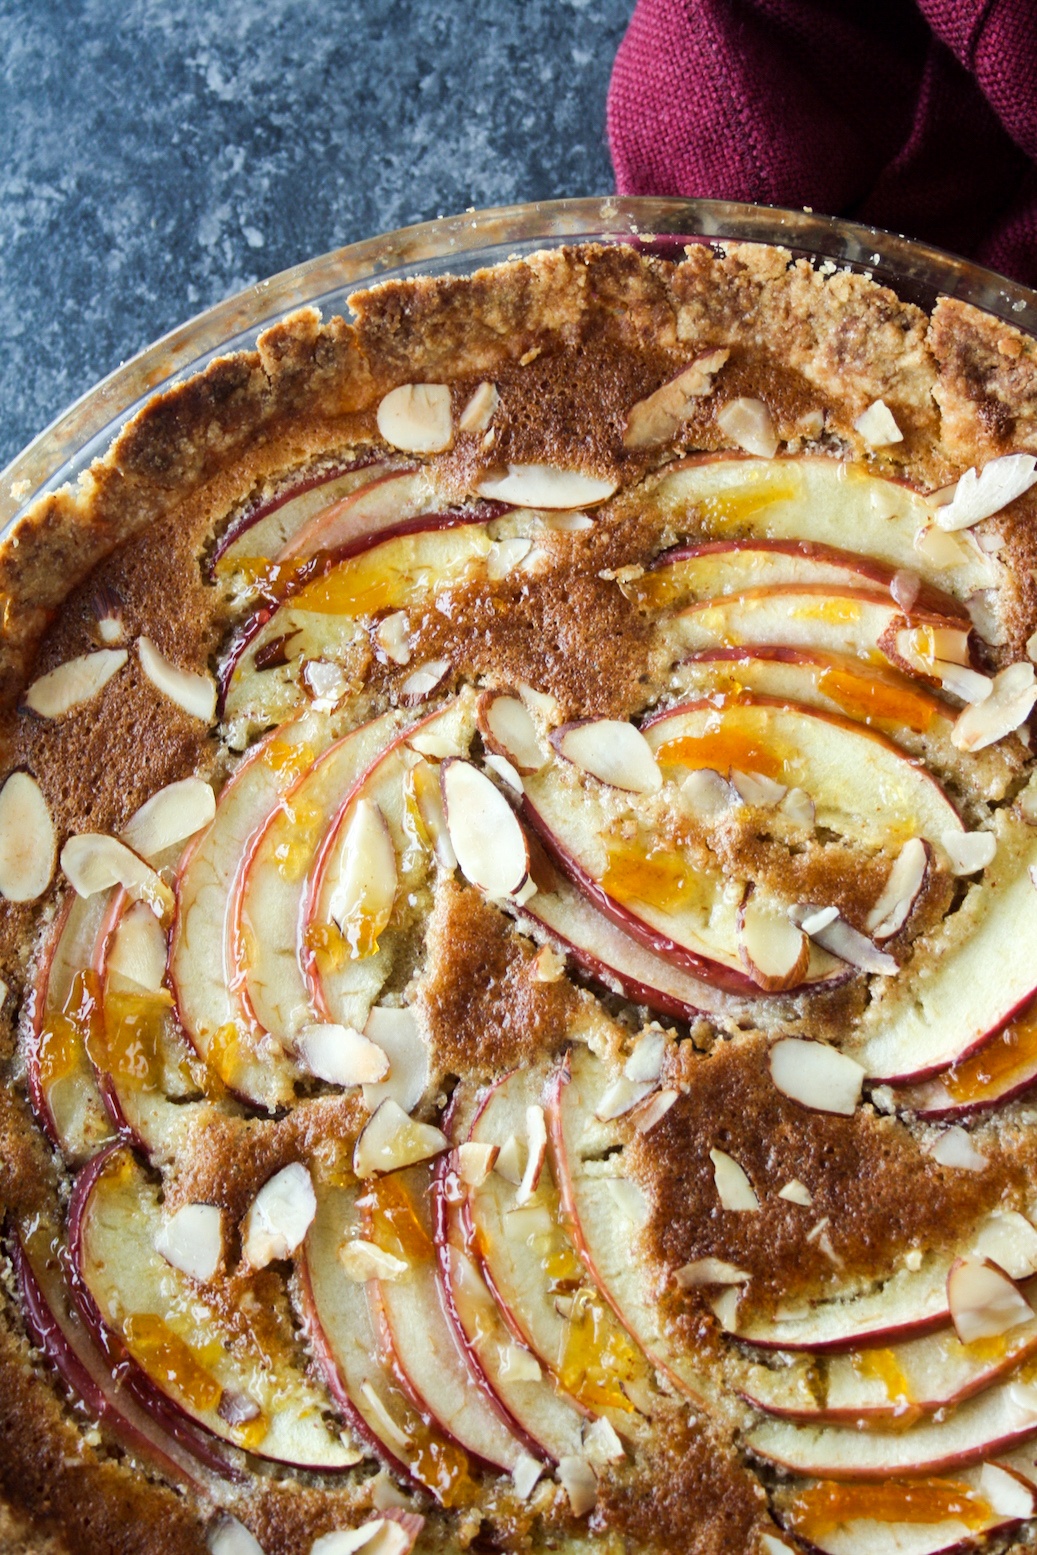 Almond frangipane tart with orange marmalade and sliced apples